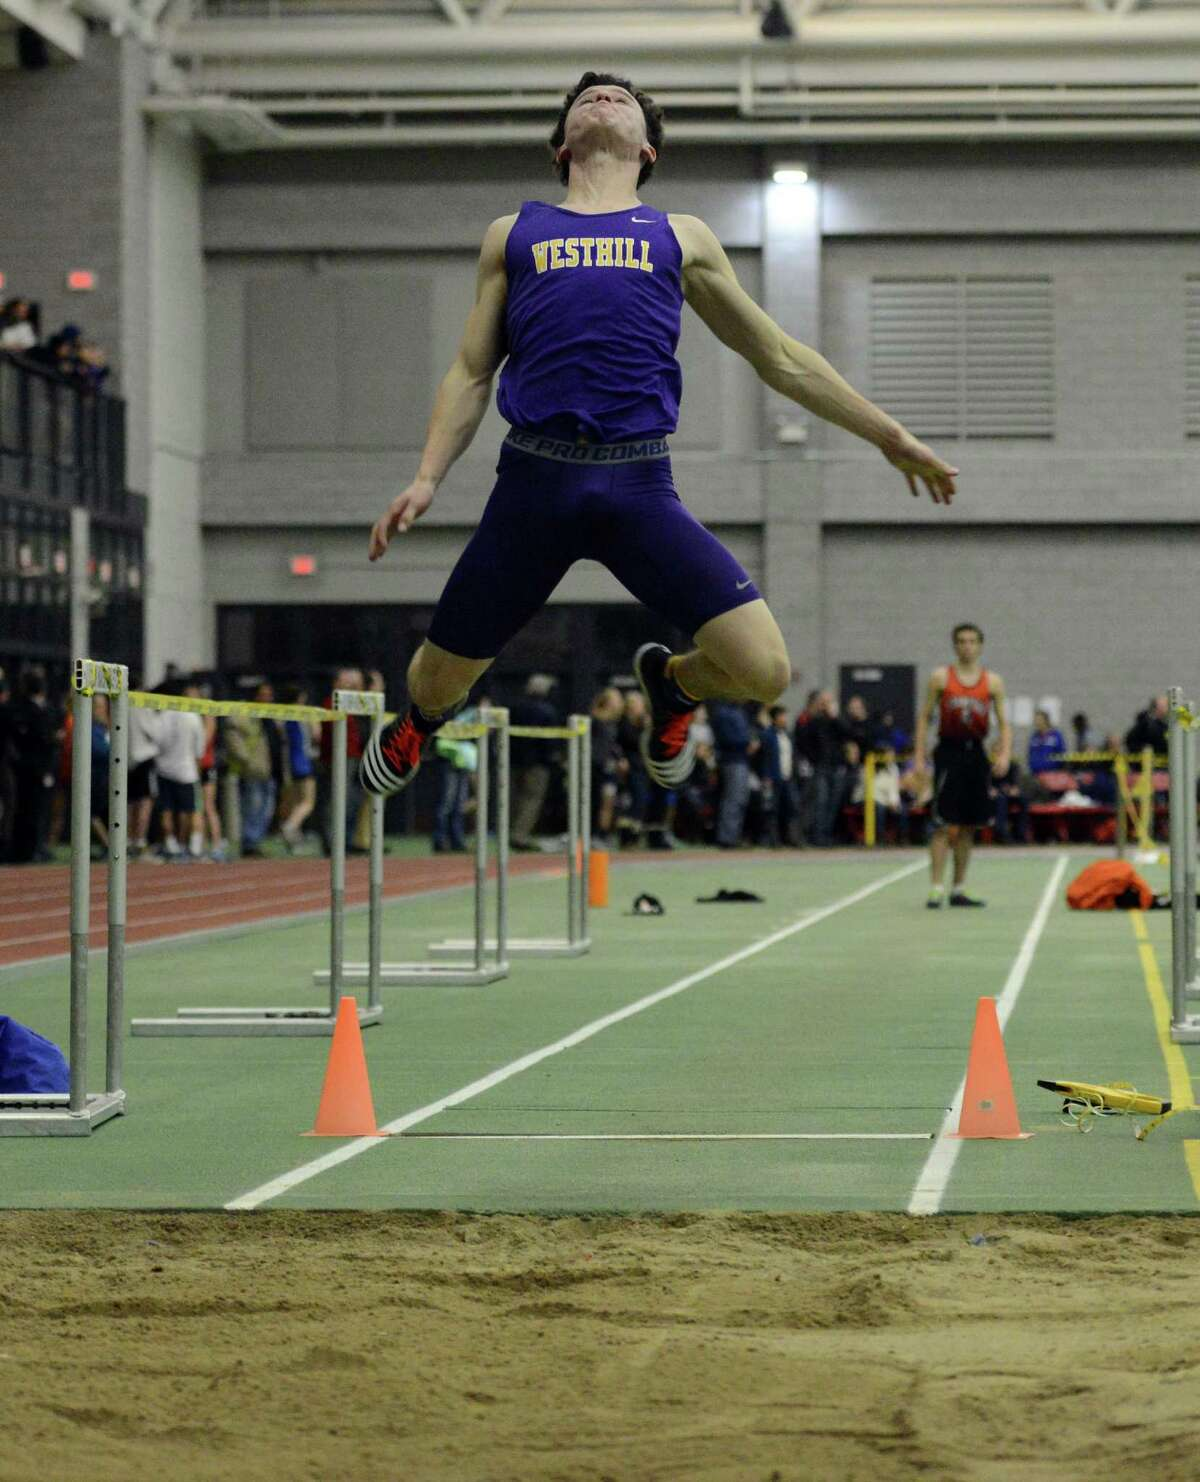 Westhill's Chris Rough competes in the long jump event Thursday, Feb. 5, 2015, during the FCIAC boys and girls indoor track and field championhsips at the Floyd Little Athletic Center in New Haven, Conn.